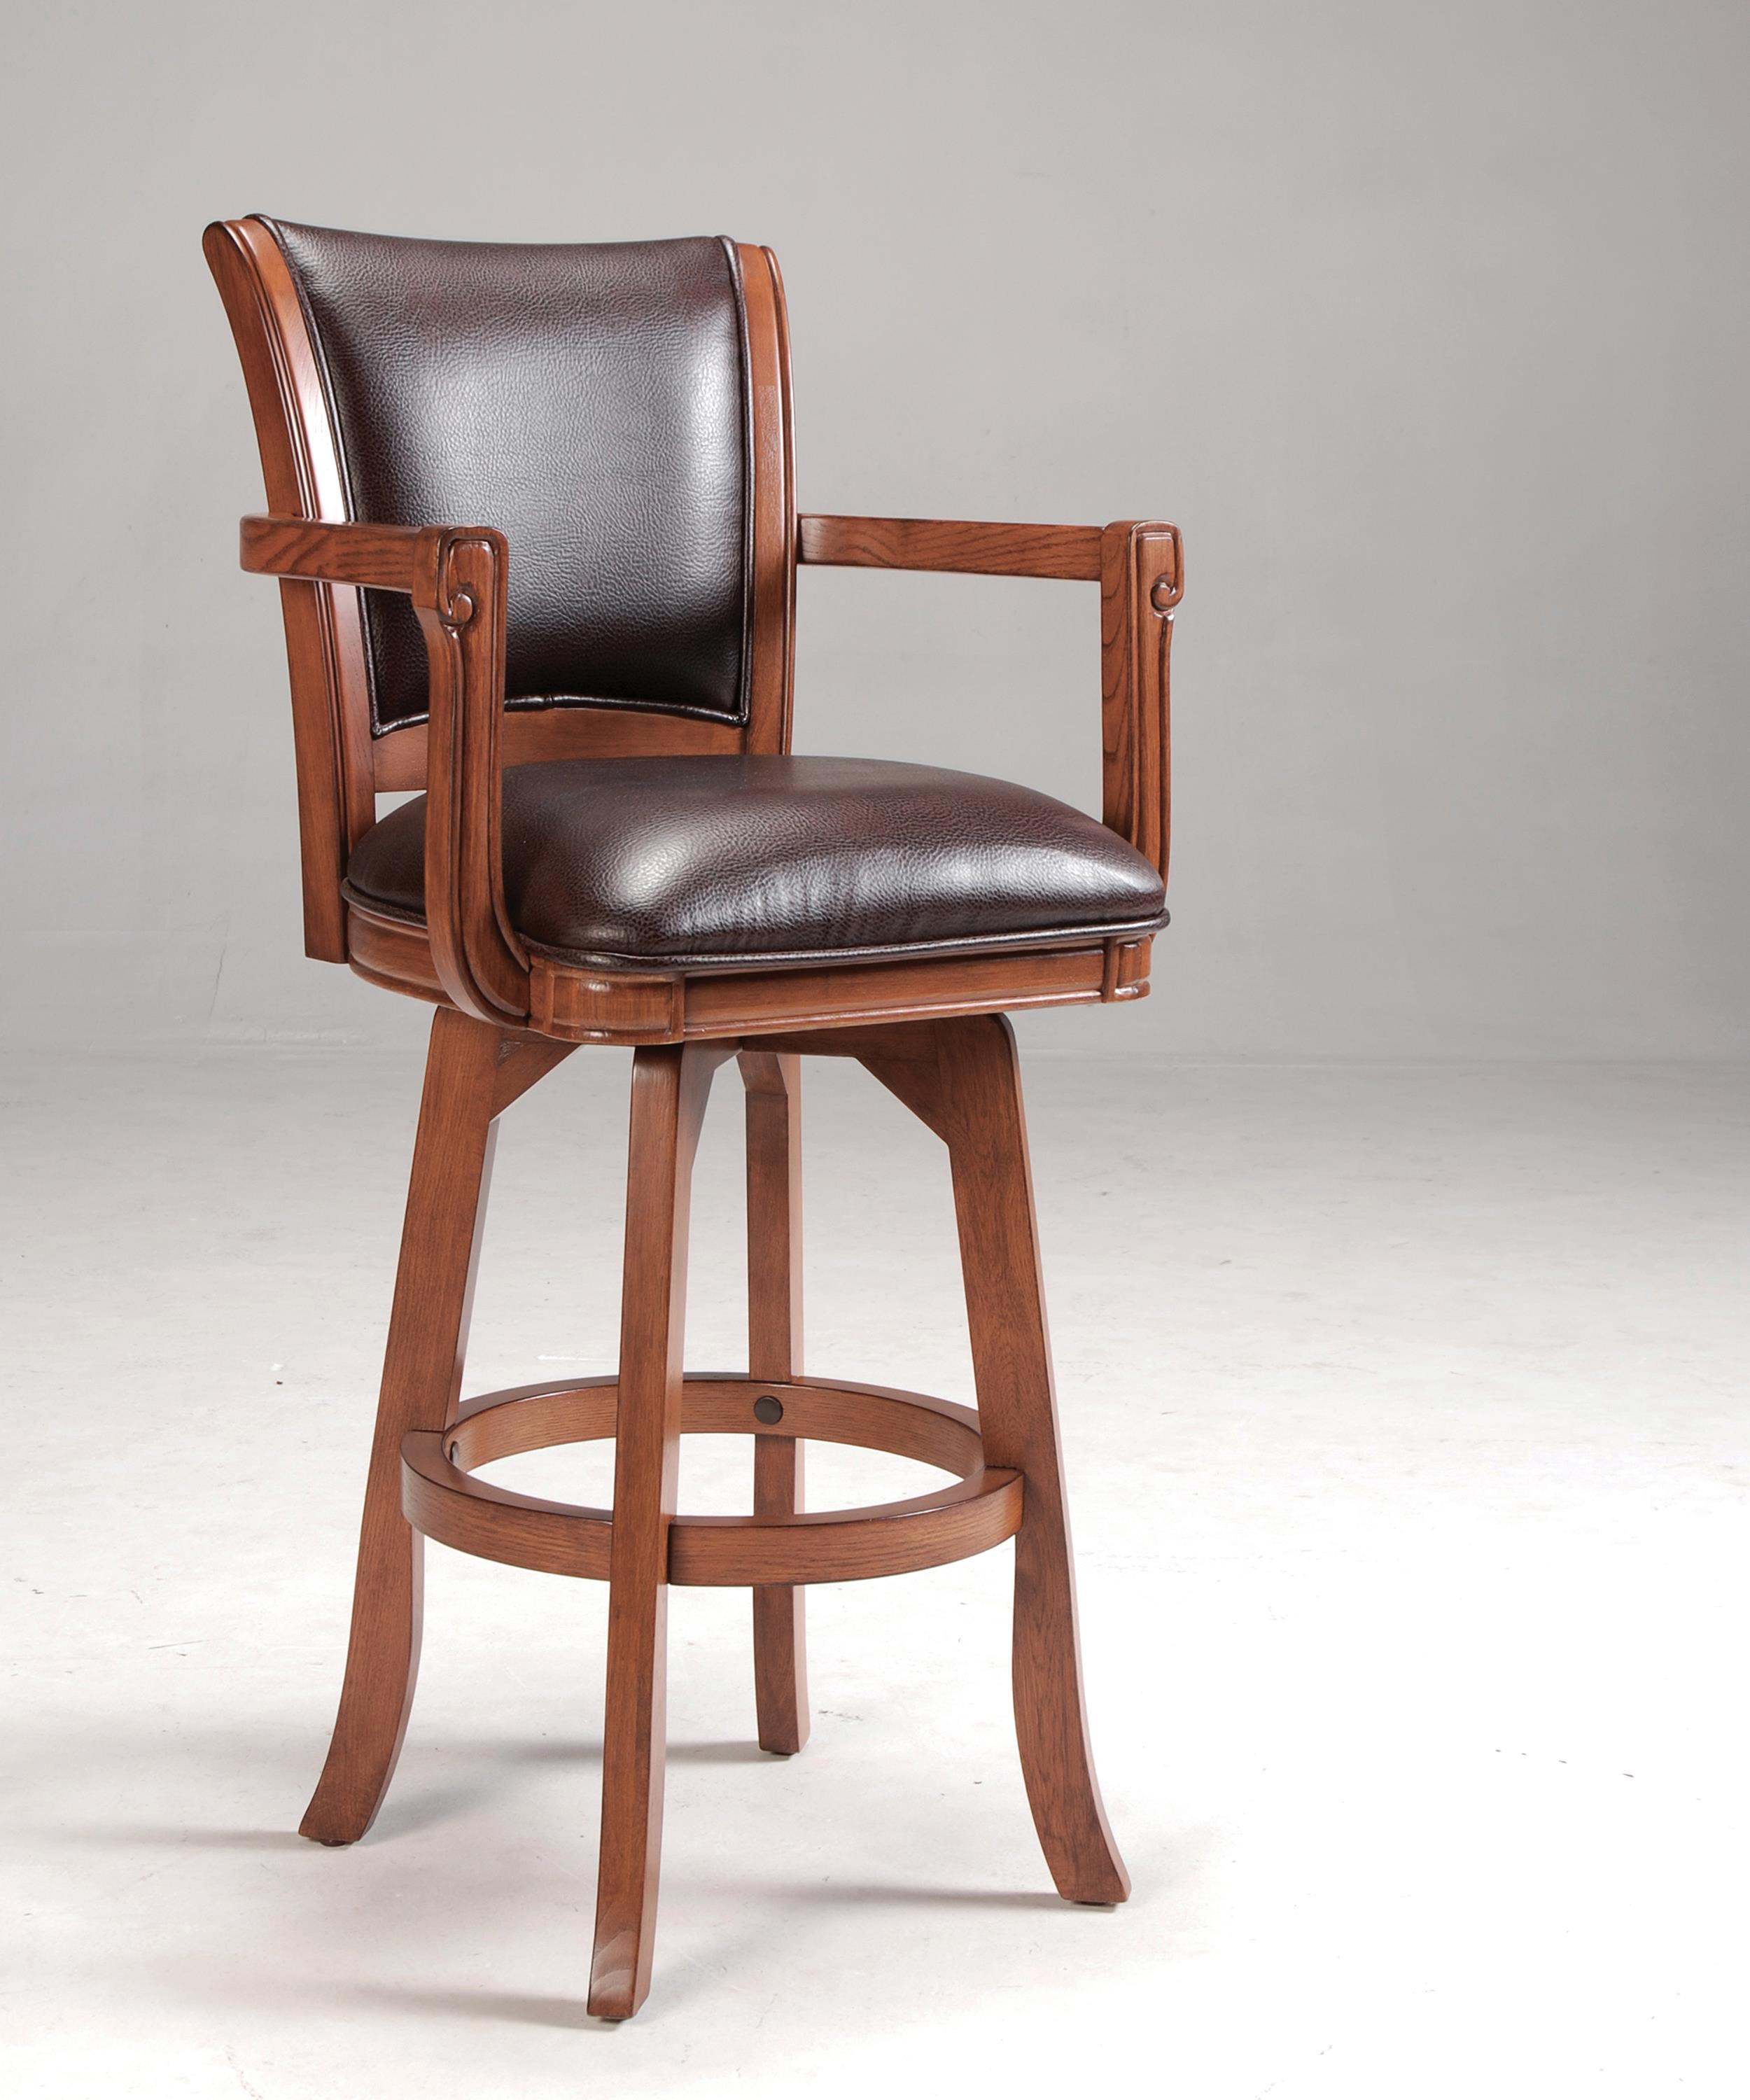 park view counter stool with arms leather upholstered seat by